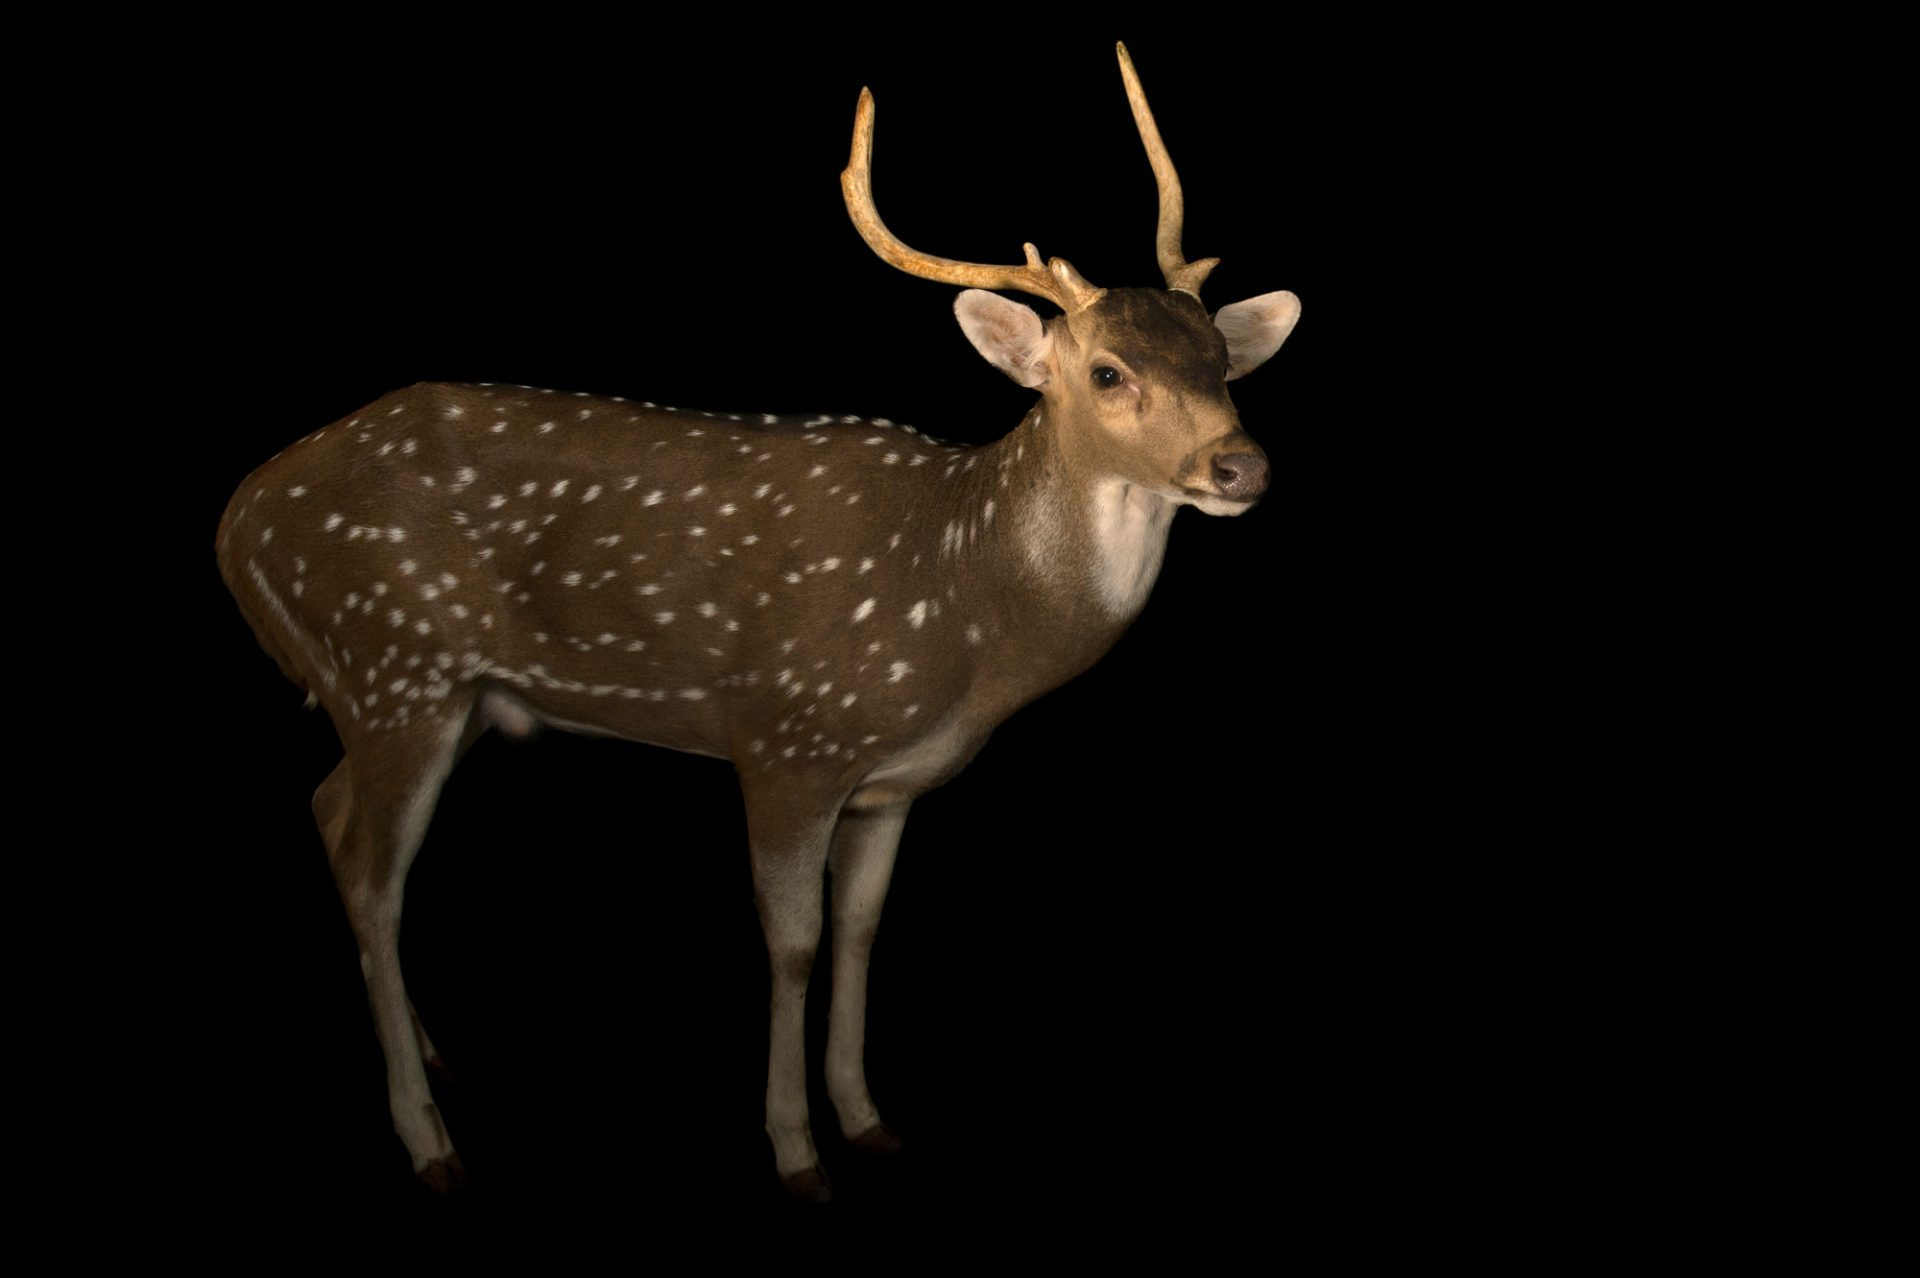 Photo: Spotted deer or Chital (Axis axis) at Kamla Nehru Zoological Garden, Ahmedabad, India.